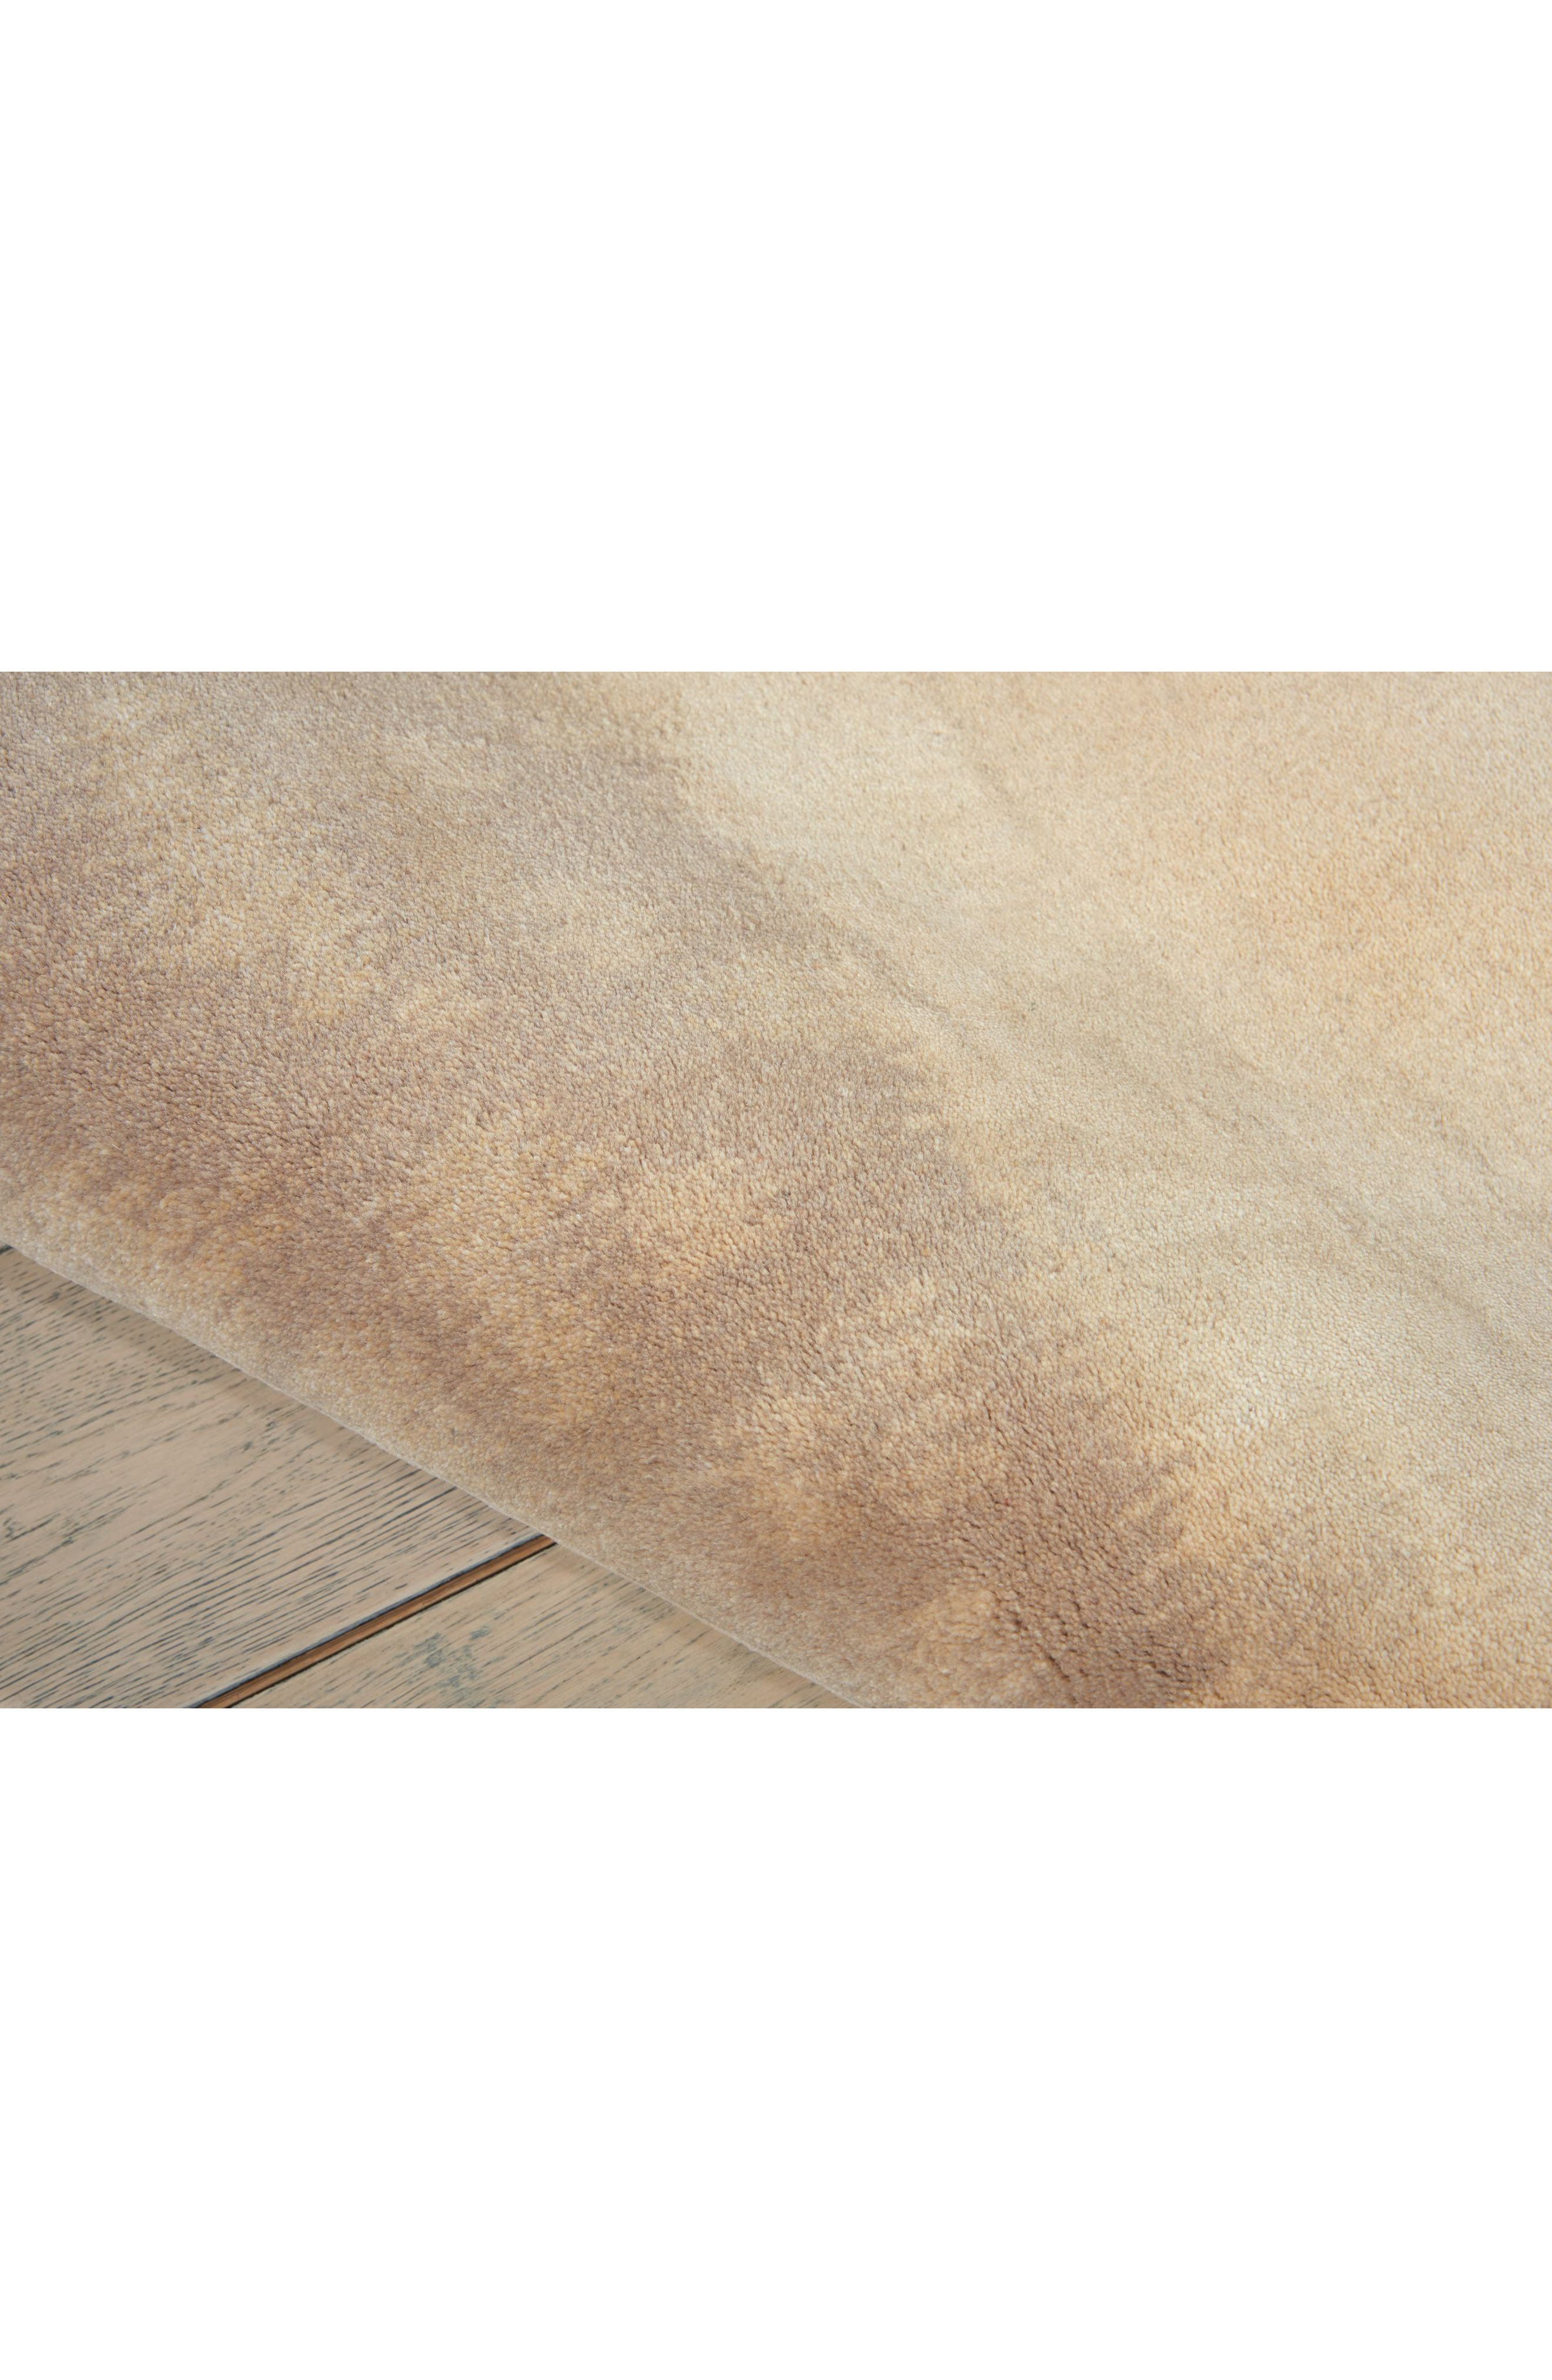 Luster Wash Wool Area Rug,                             Alternate thumbnail 29, color,